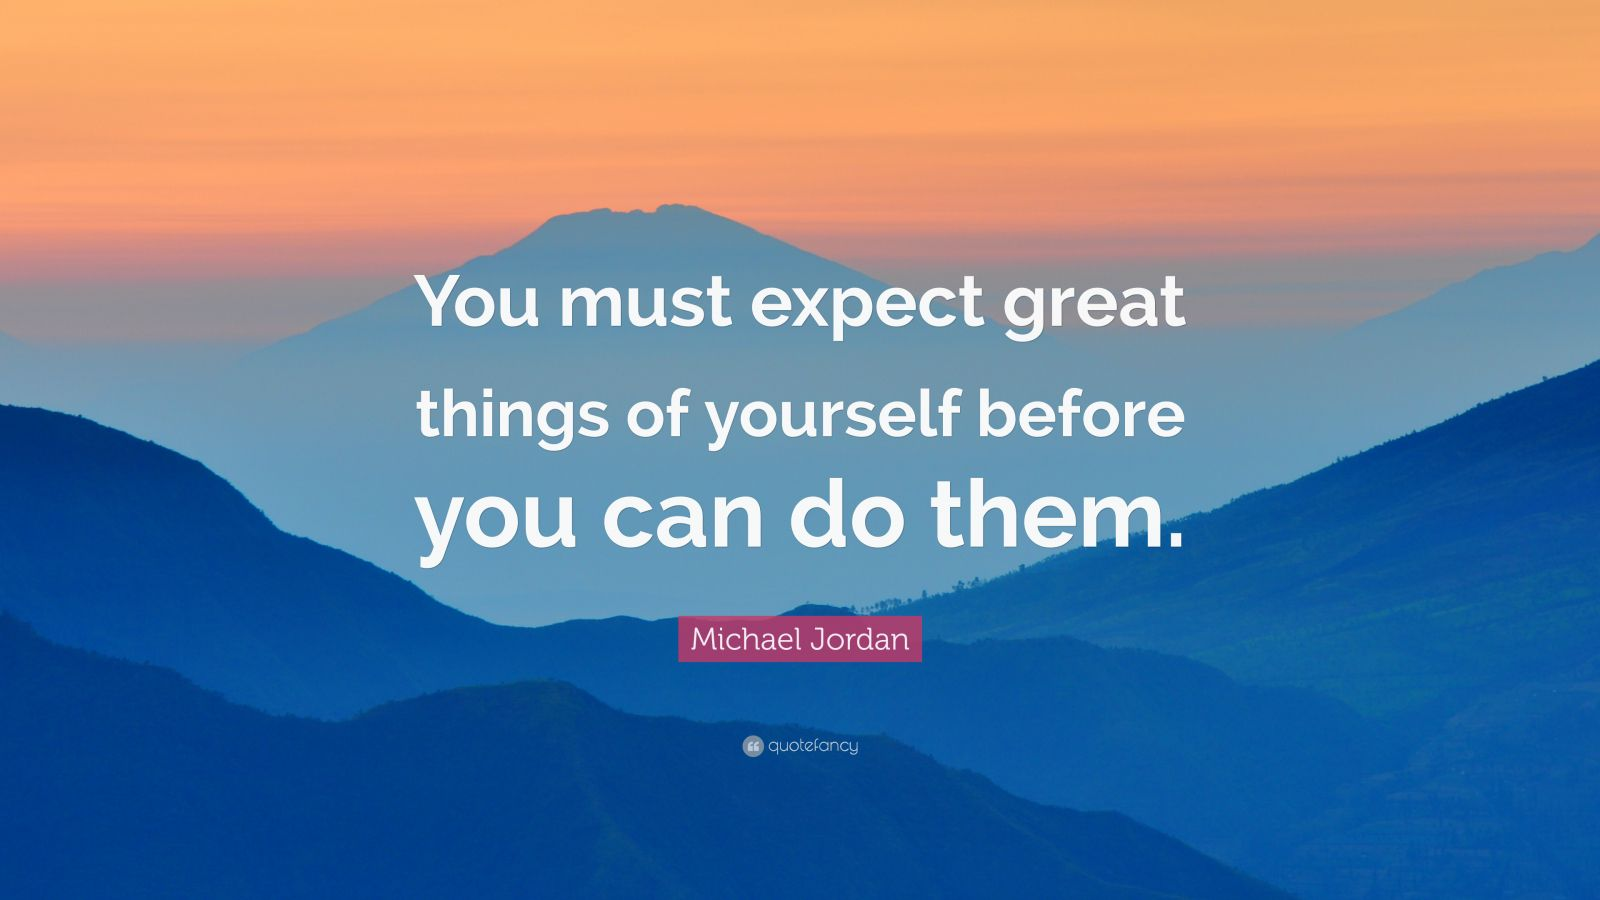 Motivational Life Quotes Wallpapers Michael Jordan Quote You Must Expect Great Things Of